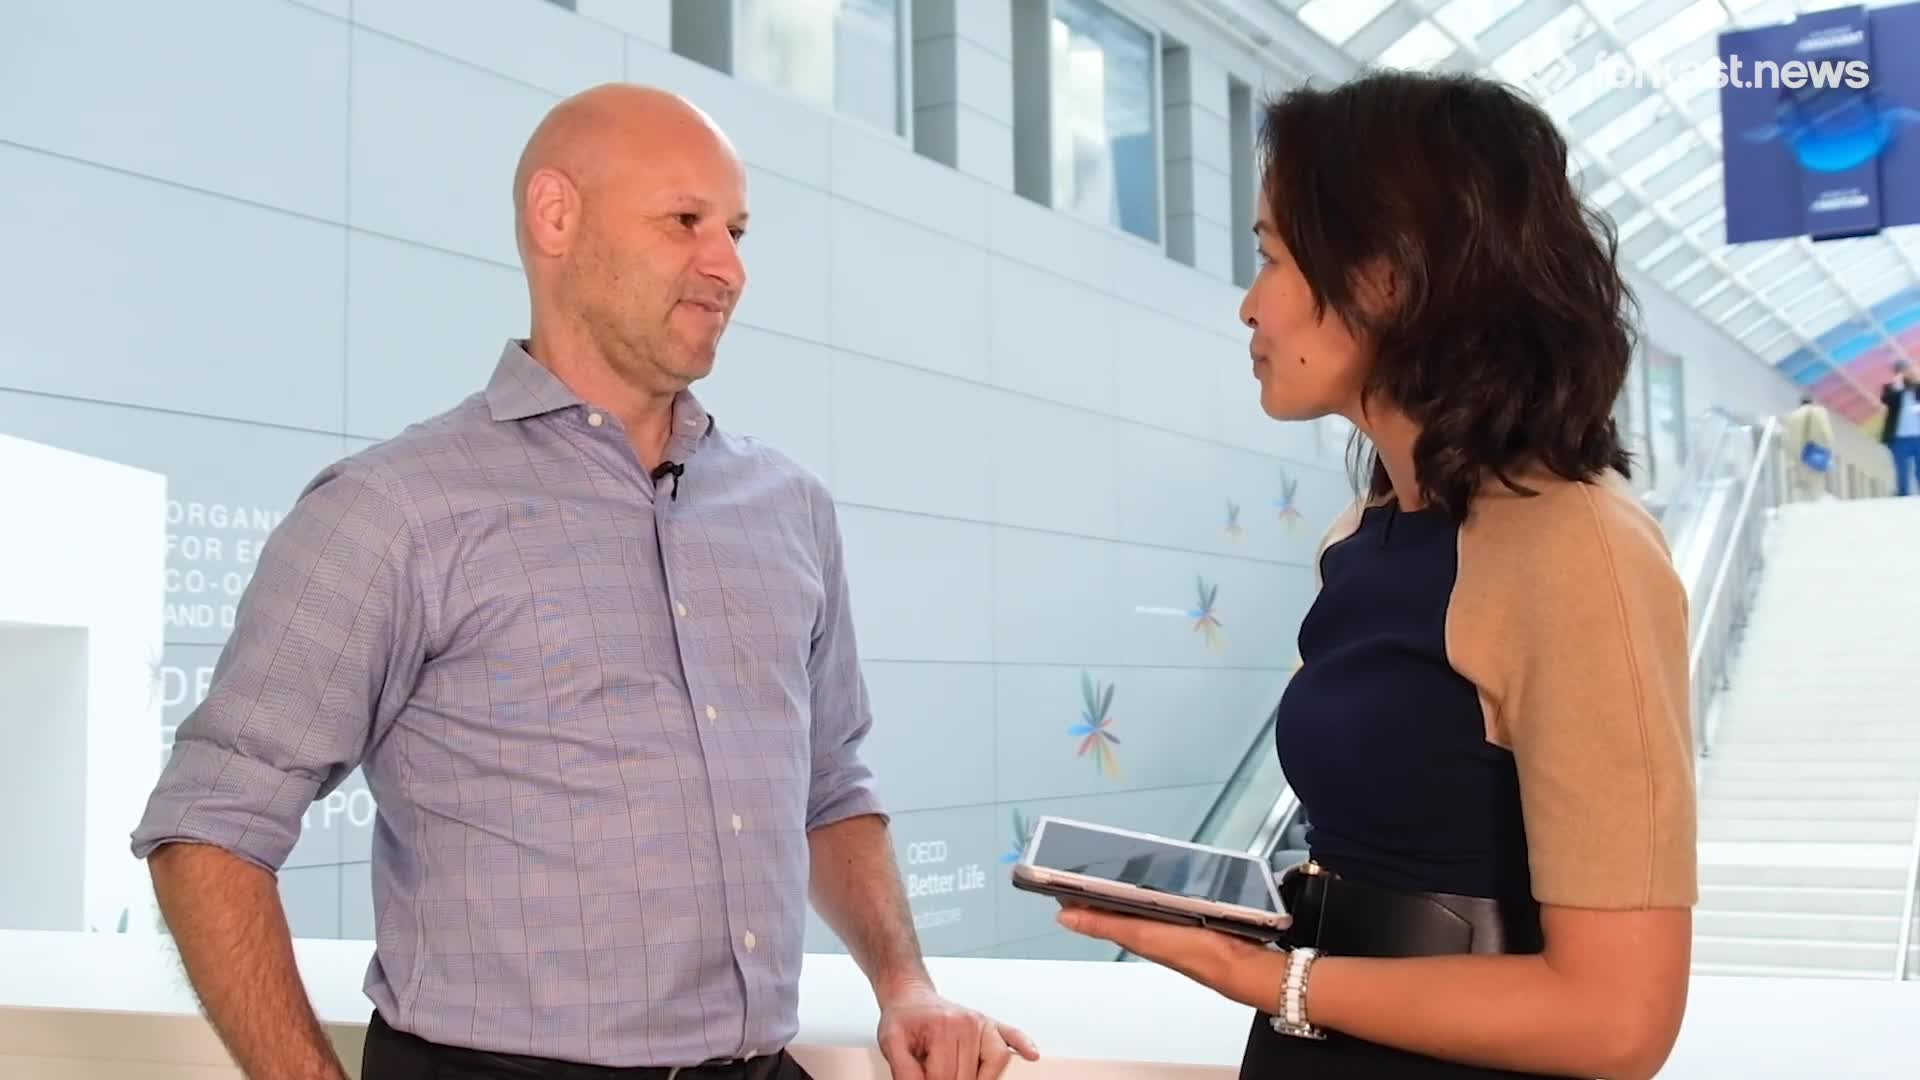 Joseph_Lubin_Founder_of_ConsenSys__Blockchain_is_a_Paradigm_Shift_for_the_Planet_Full_Interview.mp4